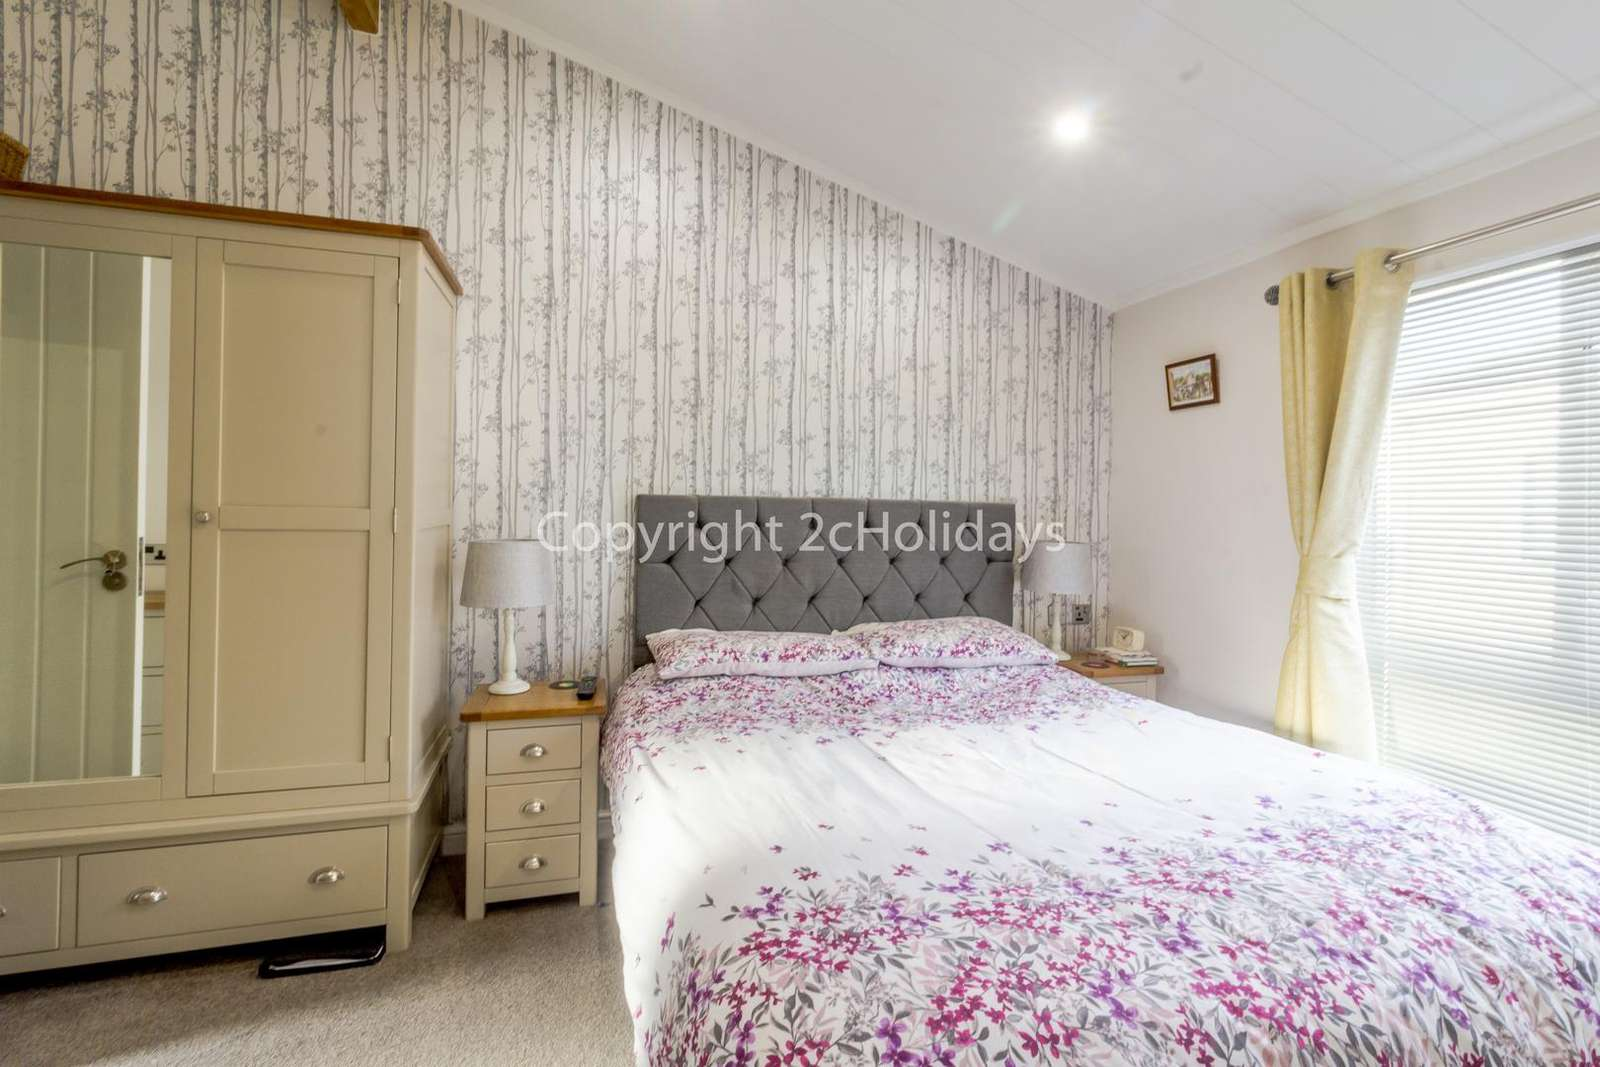 You can find plenty or storage in this mast bedroom!